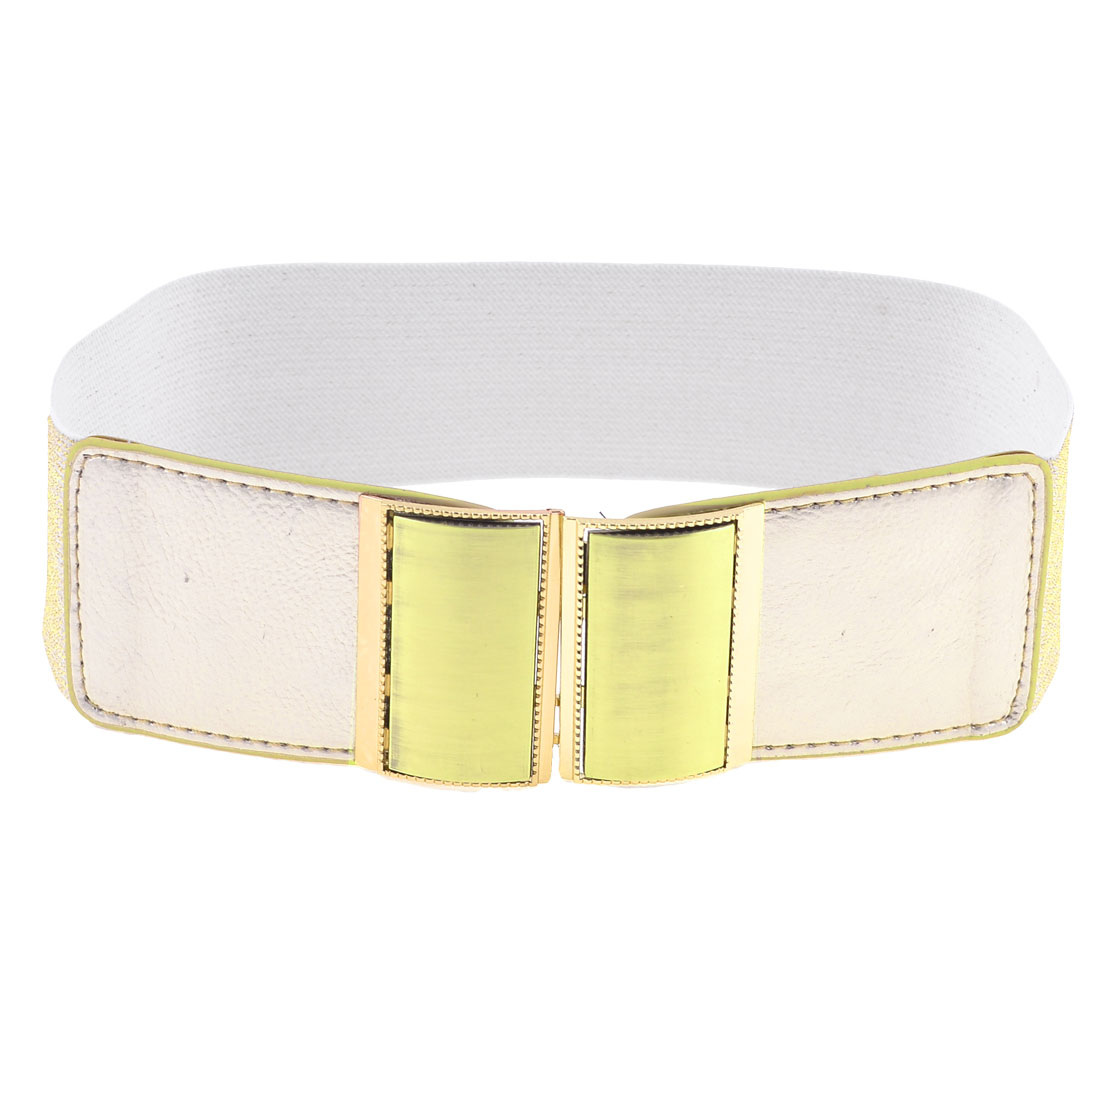 Woman Gold Tone Rectangle Interlocking Buckle Decor Cinch Waist Belt Band